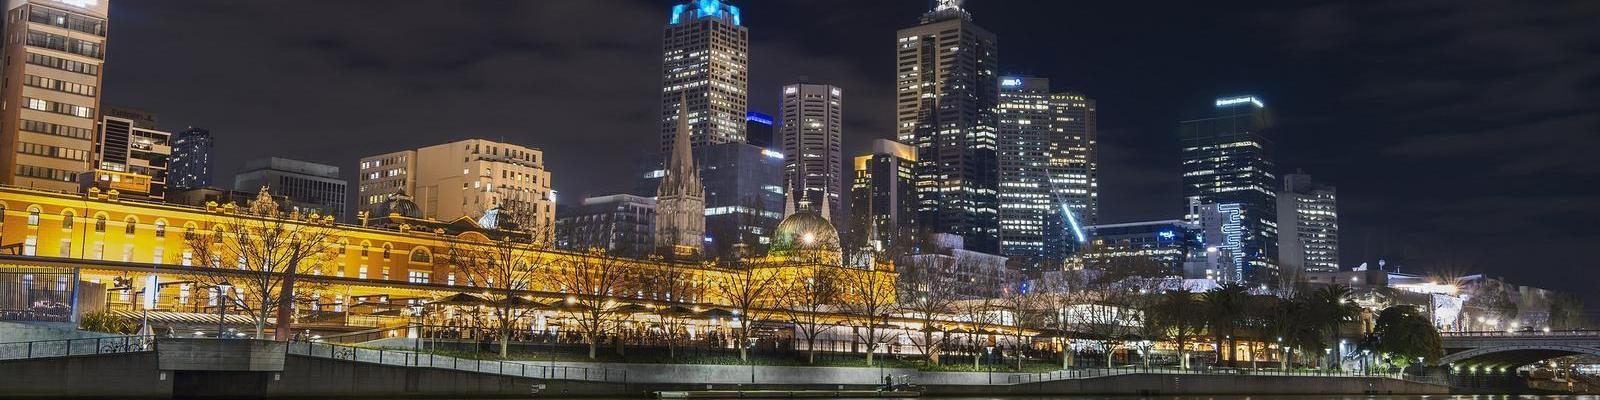 Melbourne Skyline (Flinders Street) at Night